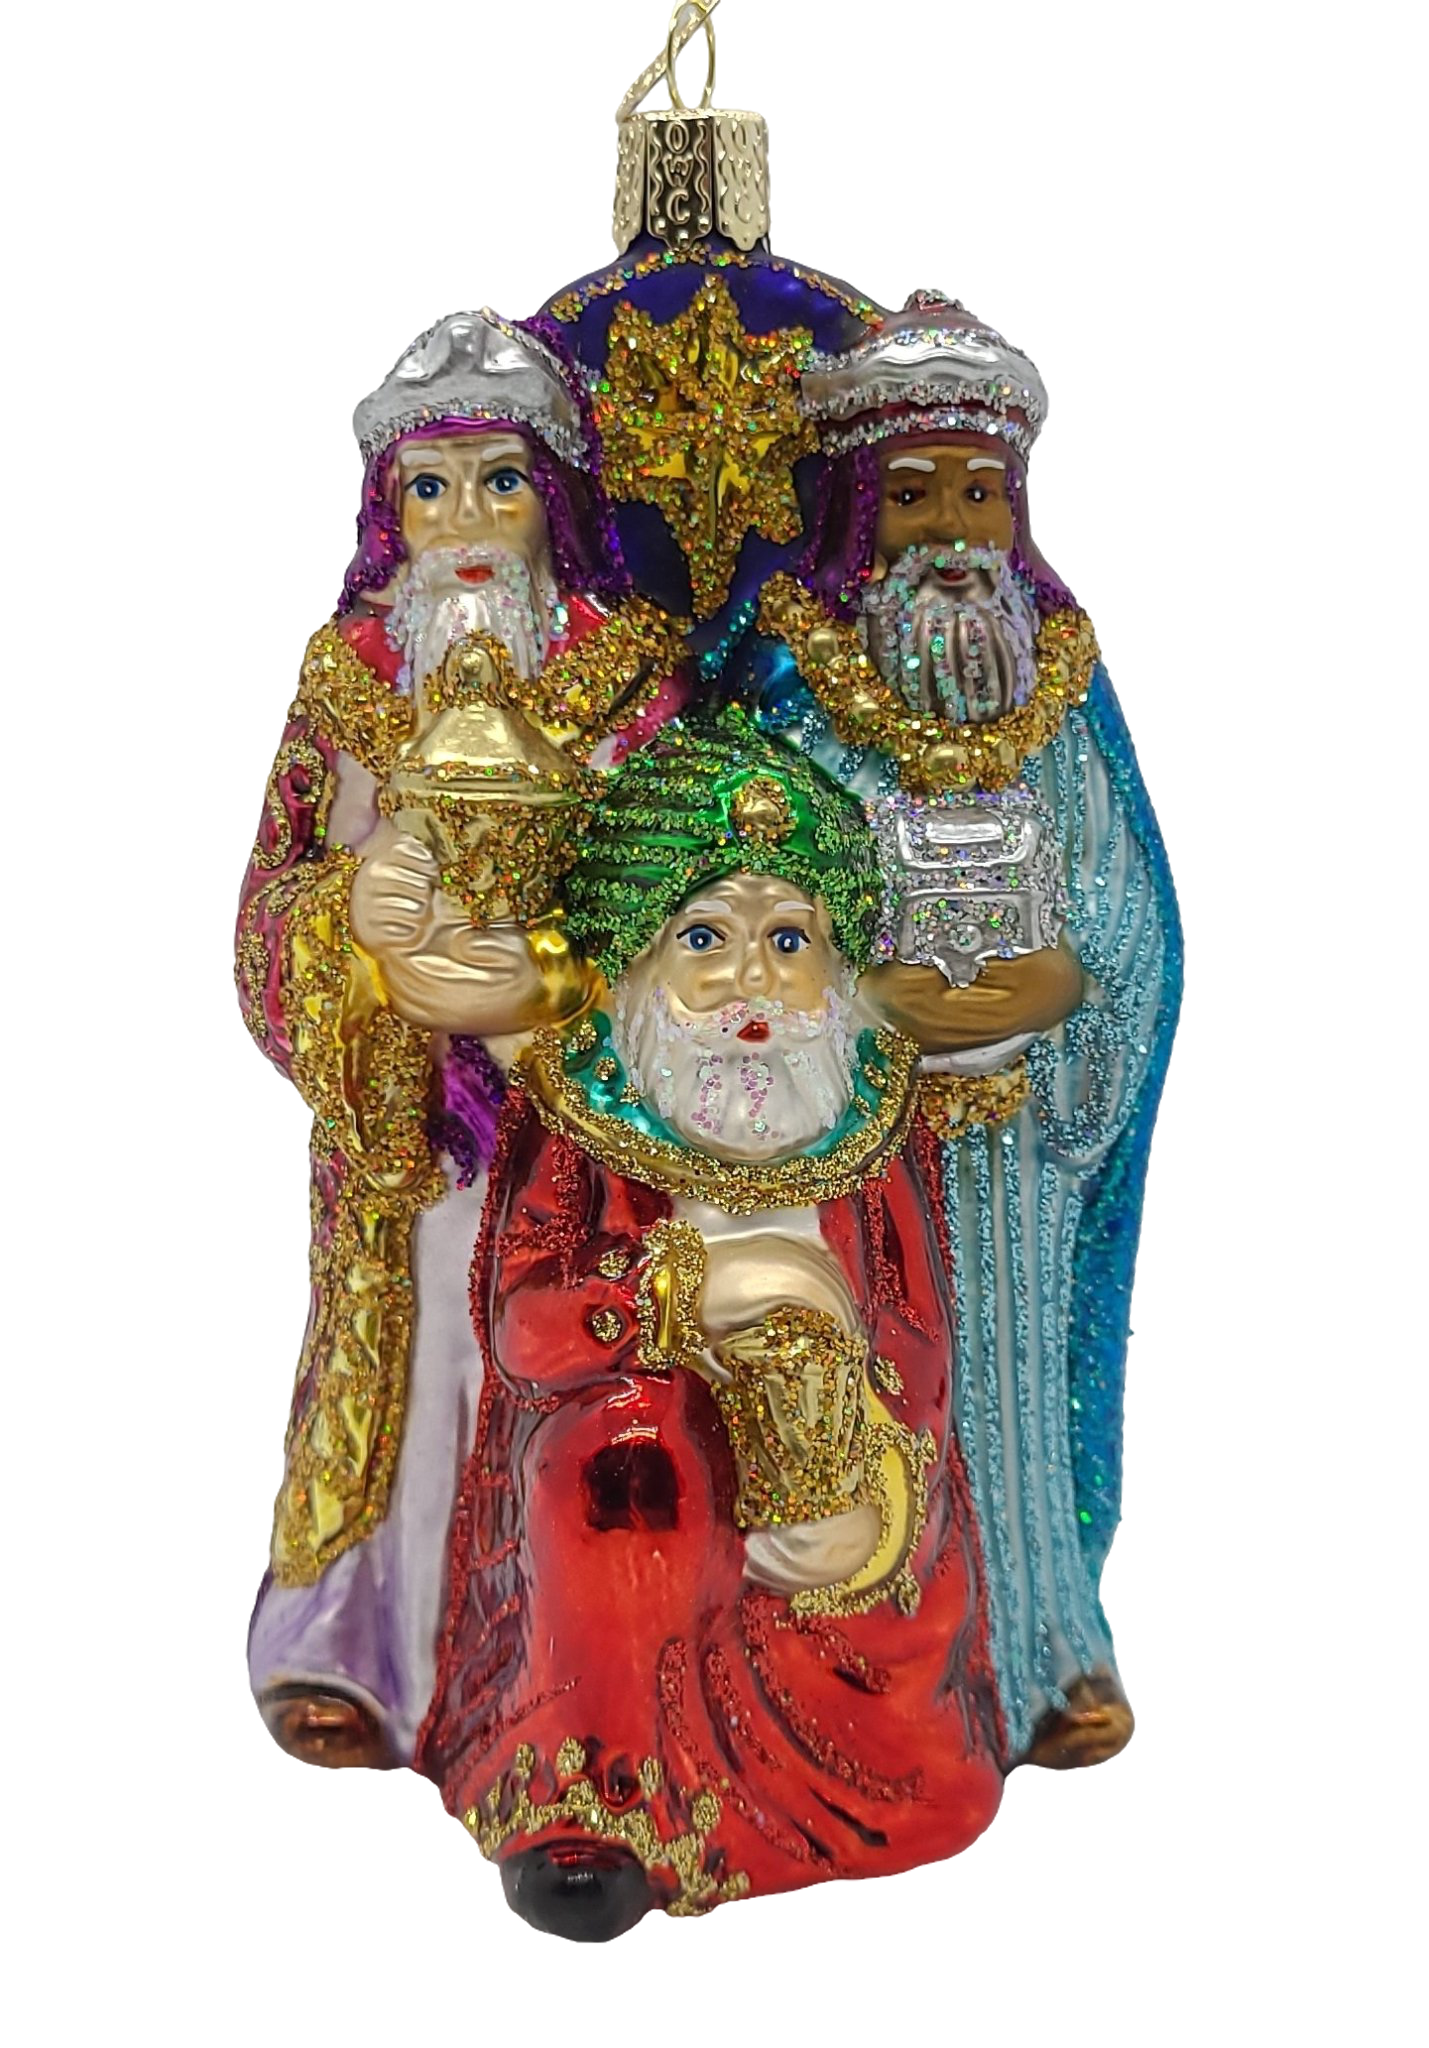 Blown Glass Collectable Nativity Collection Christmas Ornaments in a Keepsake Box - Schmidt Christmas Market Christmas Decoration